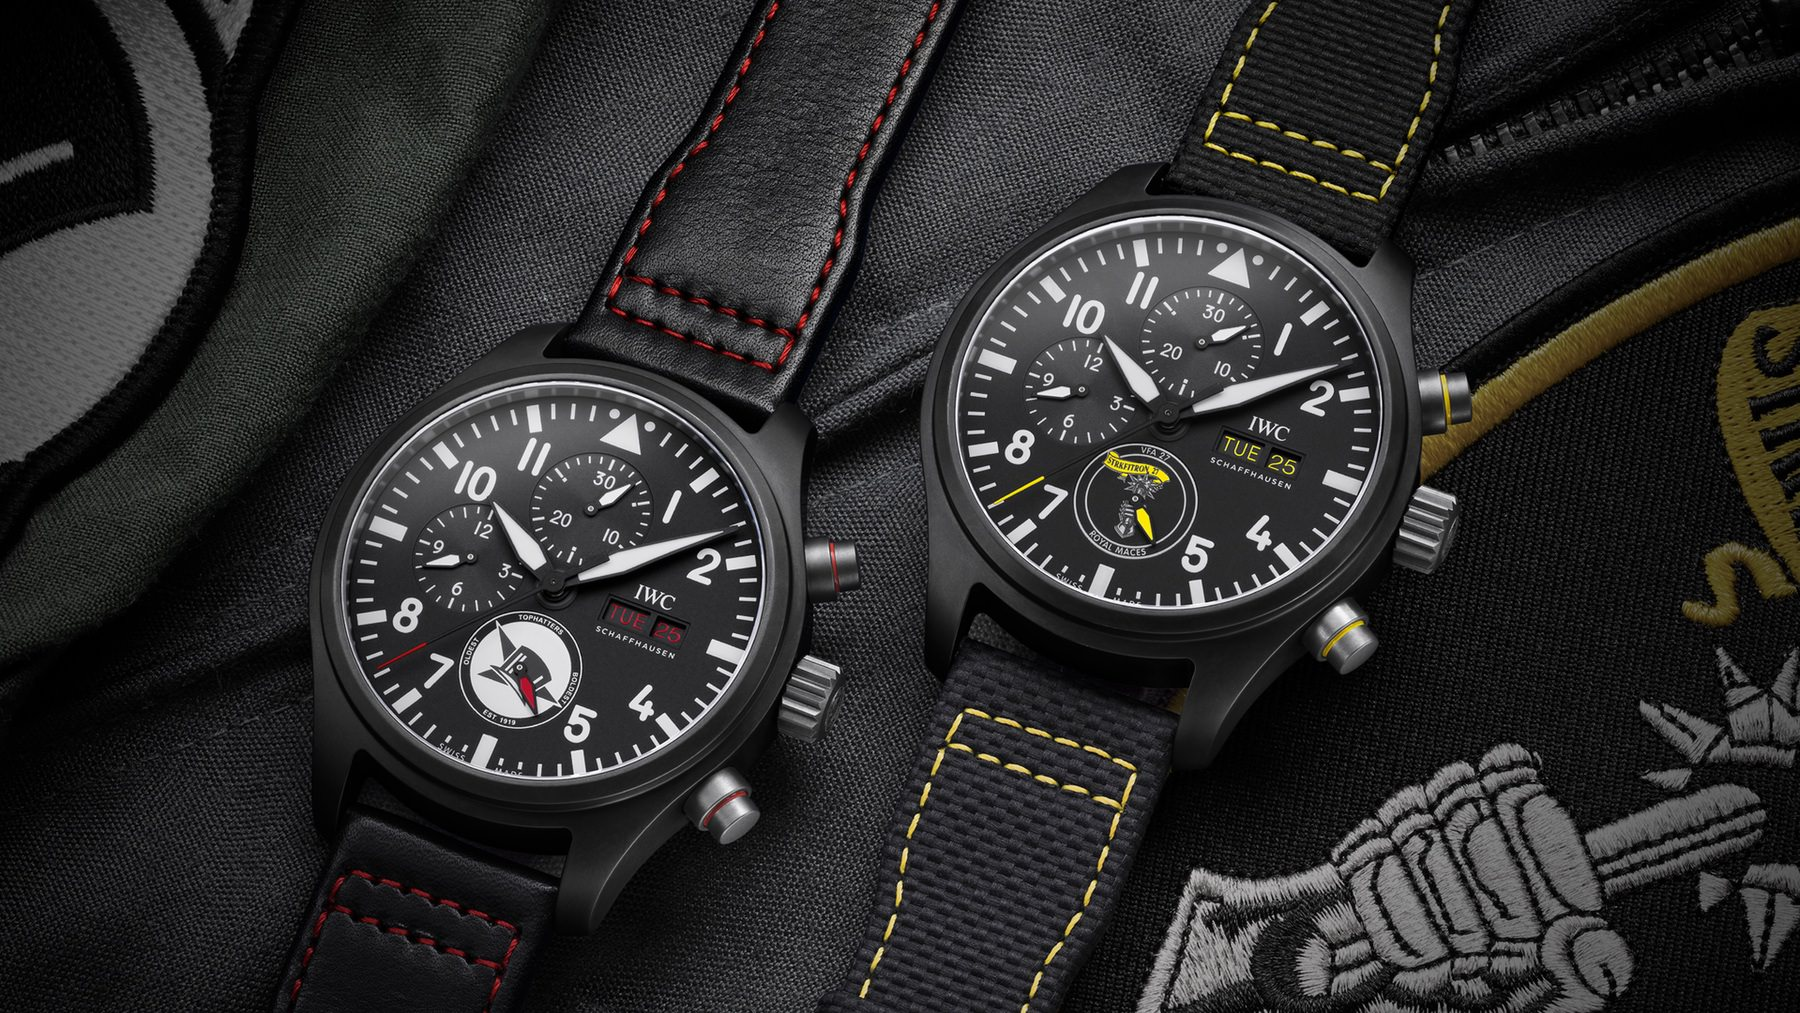 IWC Pilot Watch Chronograph US Navy Squadrons Royal Maces - Tophatters Editions Lifestyle